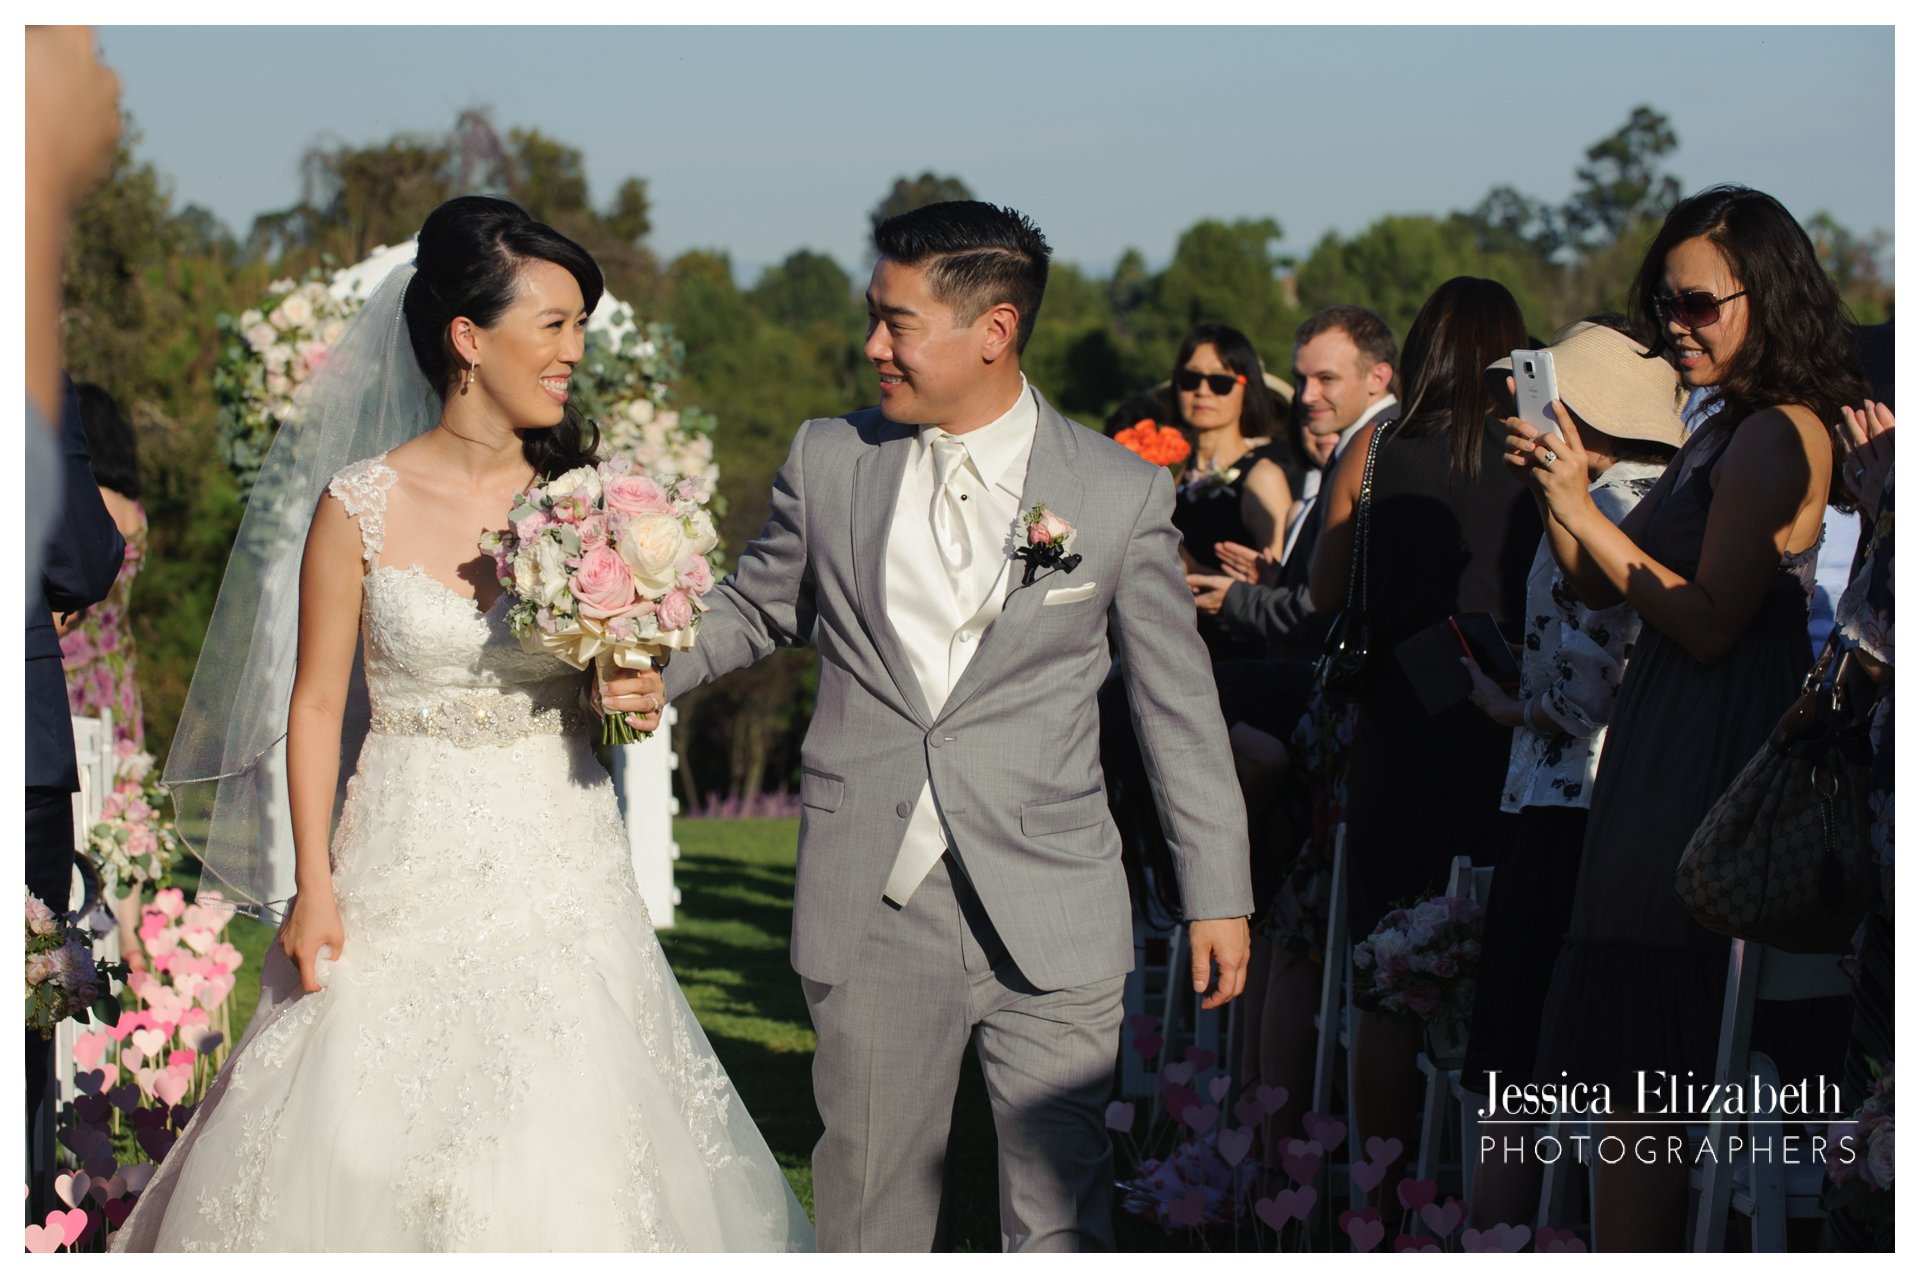 21-South-Coast-Botanic-Garden-Palos-Verdes-Wedding-Photography-by-Jessica-Elizabeth.jpg